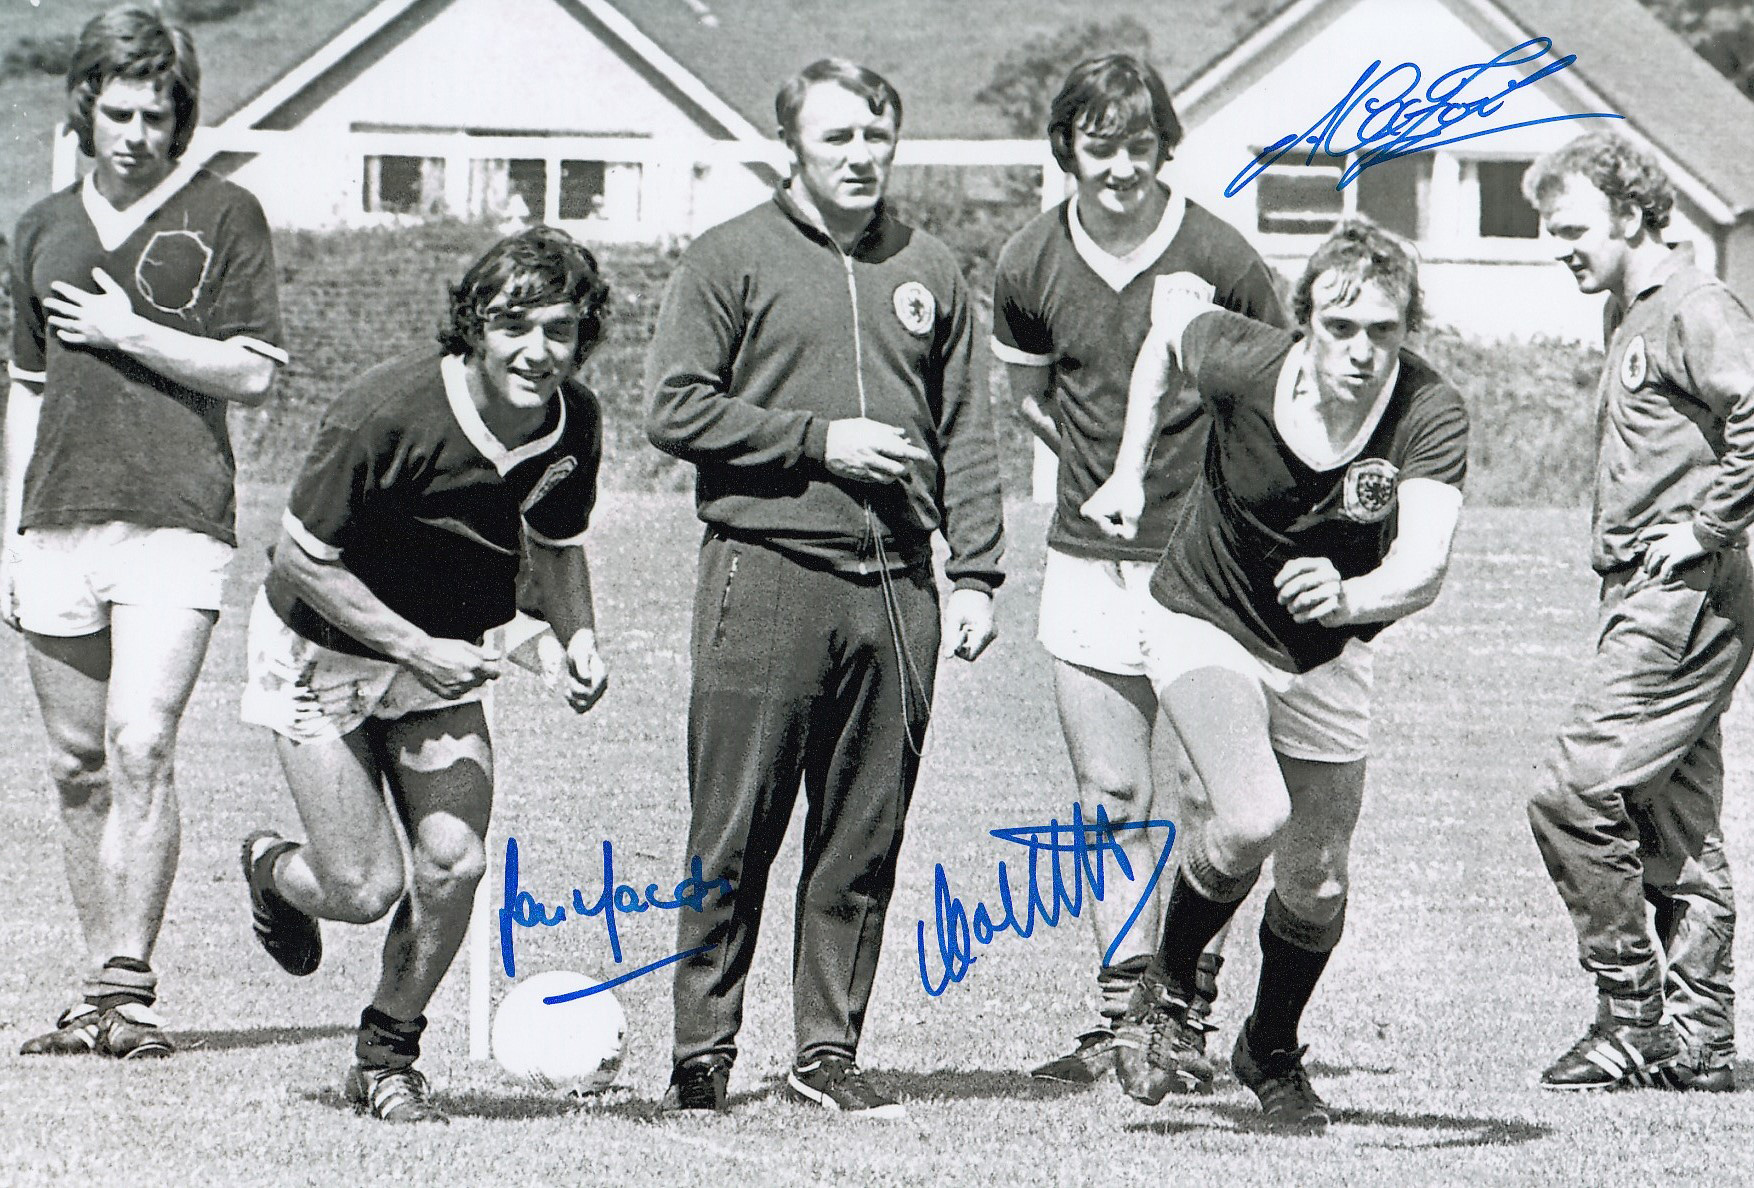 Autographed Scotland 12 X 8 Photo B W, Depicting The Scotland Manager Tommy Docherty Looking On